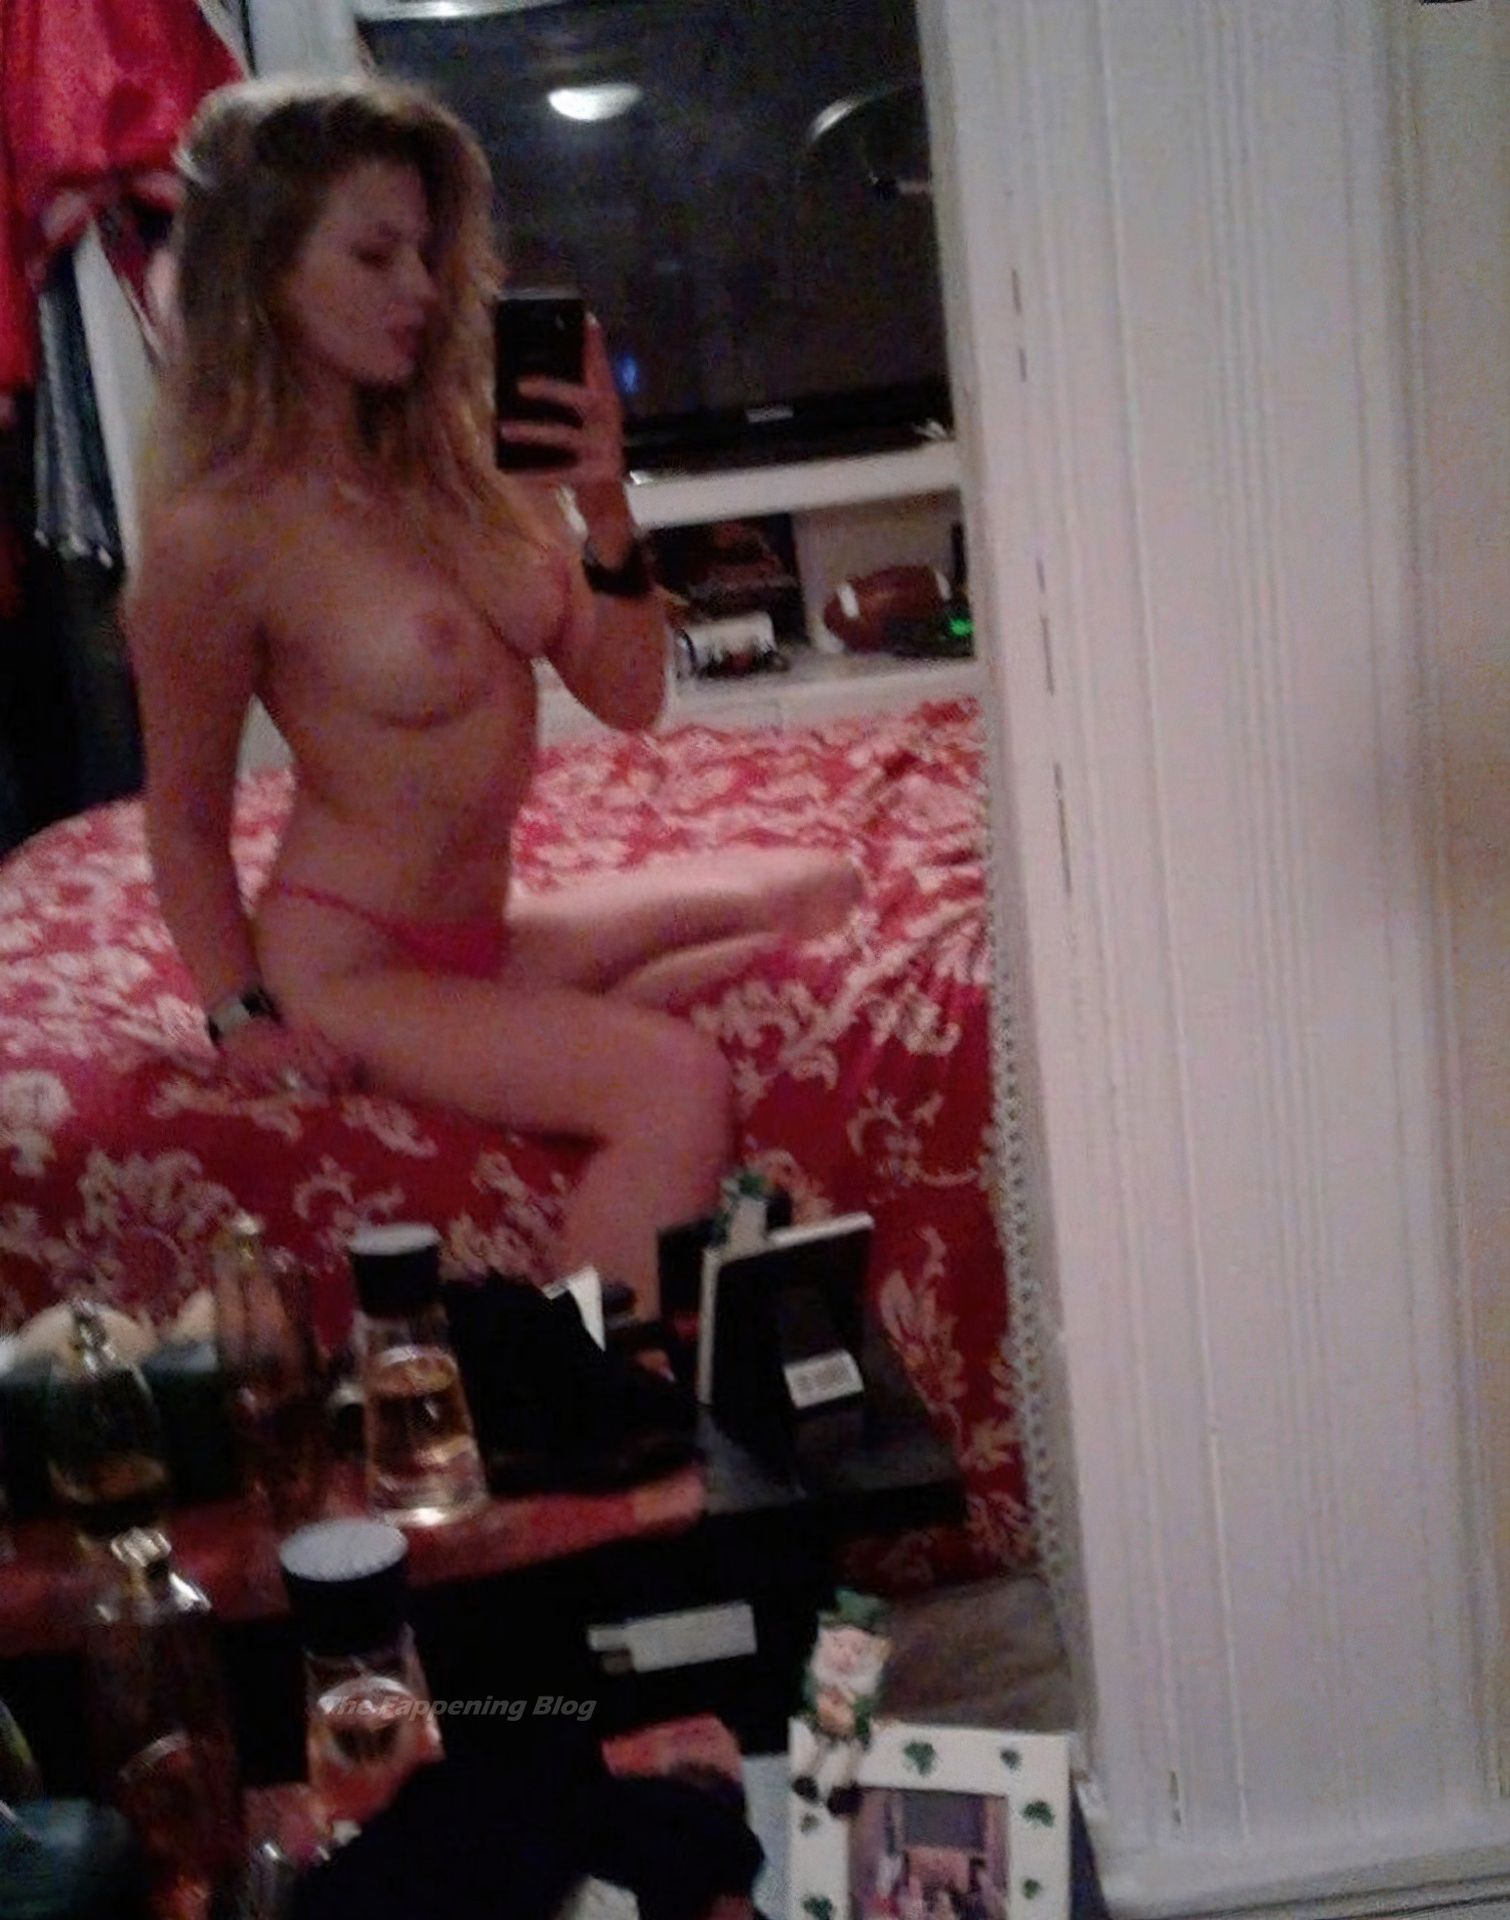 Casie Chegwidden Nude Leaked The Fappening Blog 3